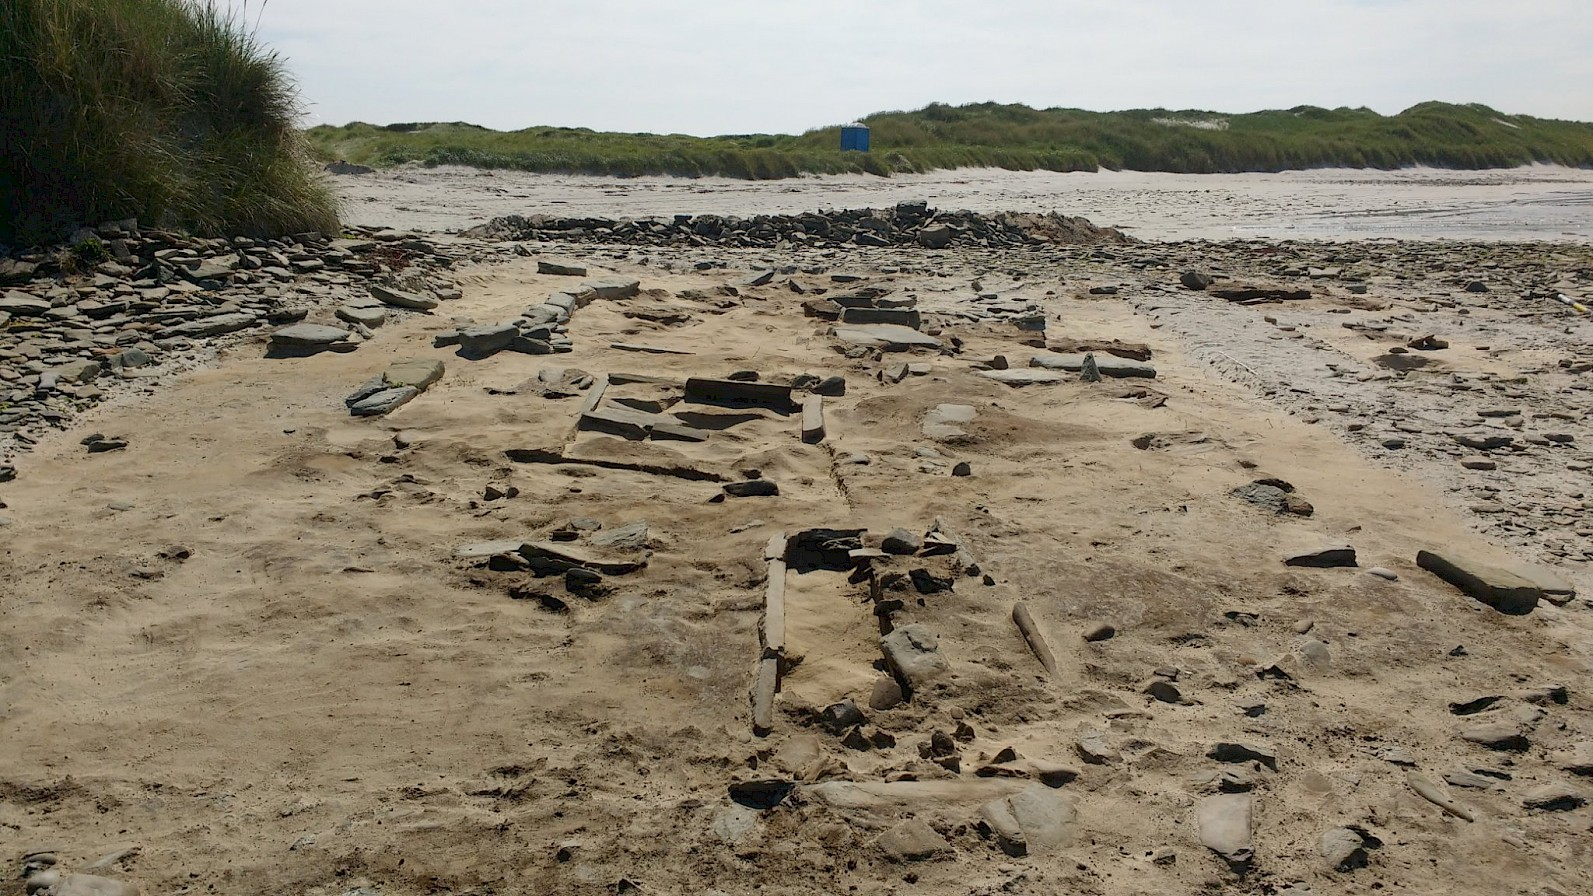 The main dig site at Cata Sand, Orkney - image courtesy Archaeology Institute UHI